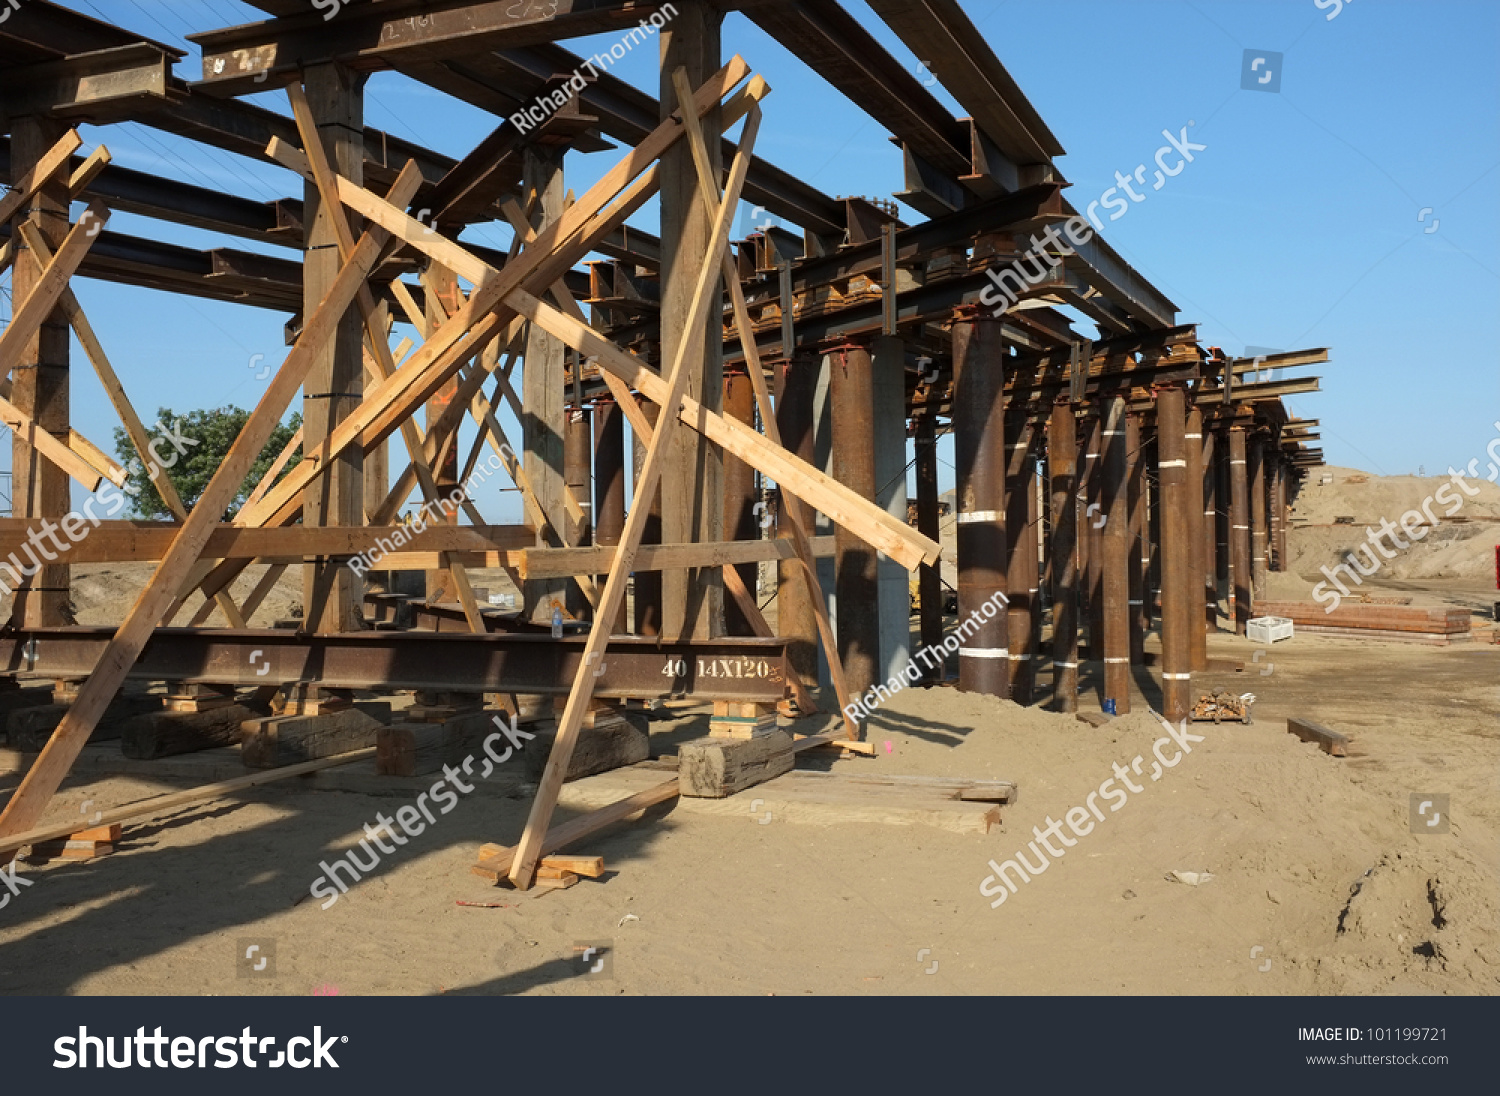 Portable Bridge Construction : Bridge construction project temporary wood bracing stock